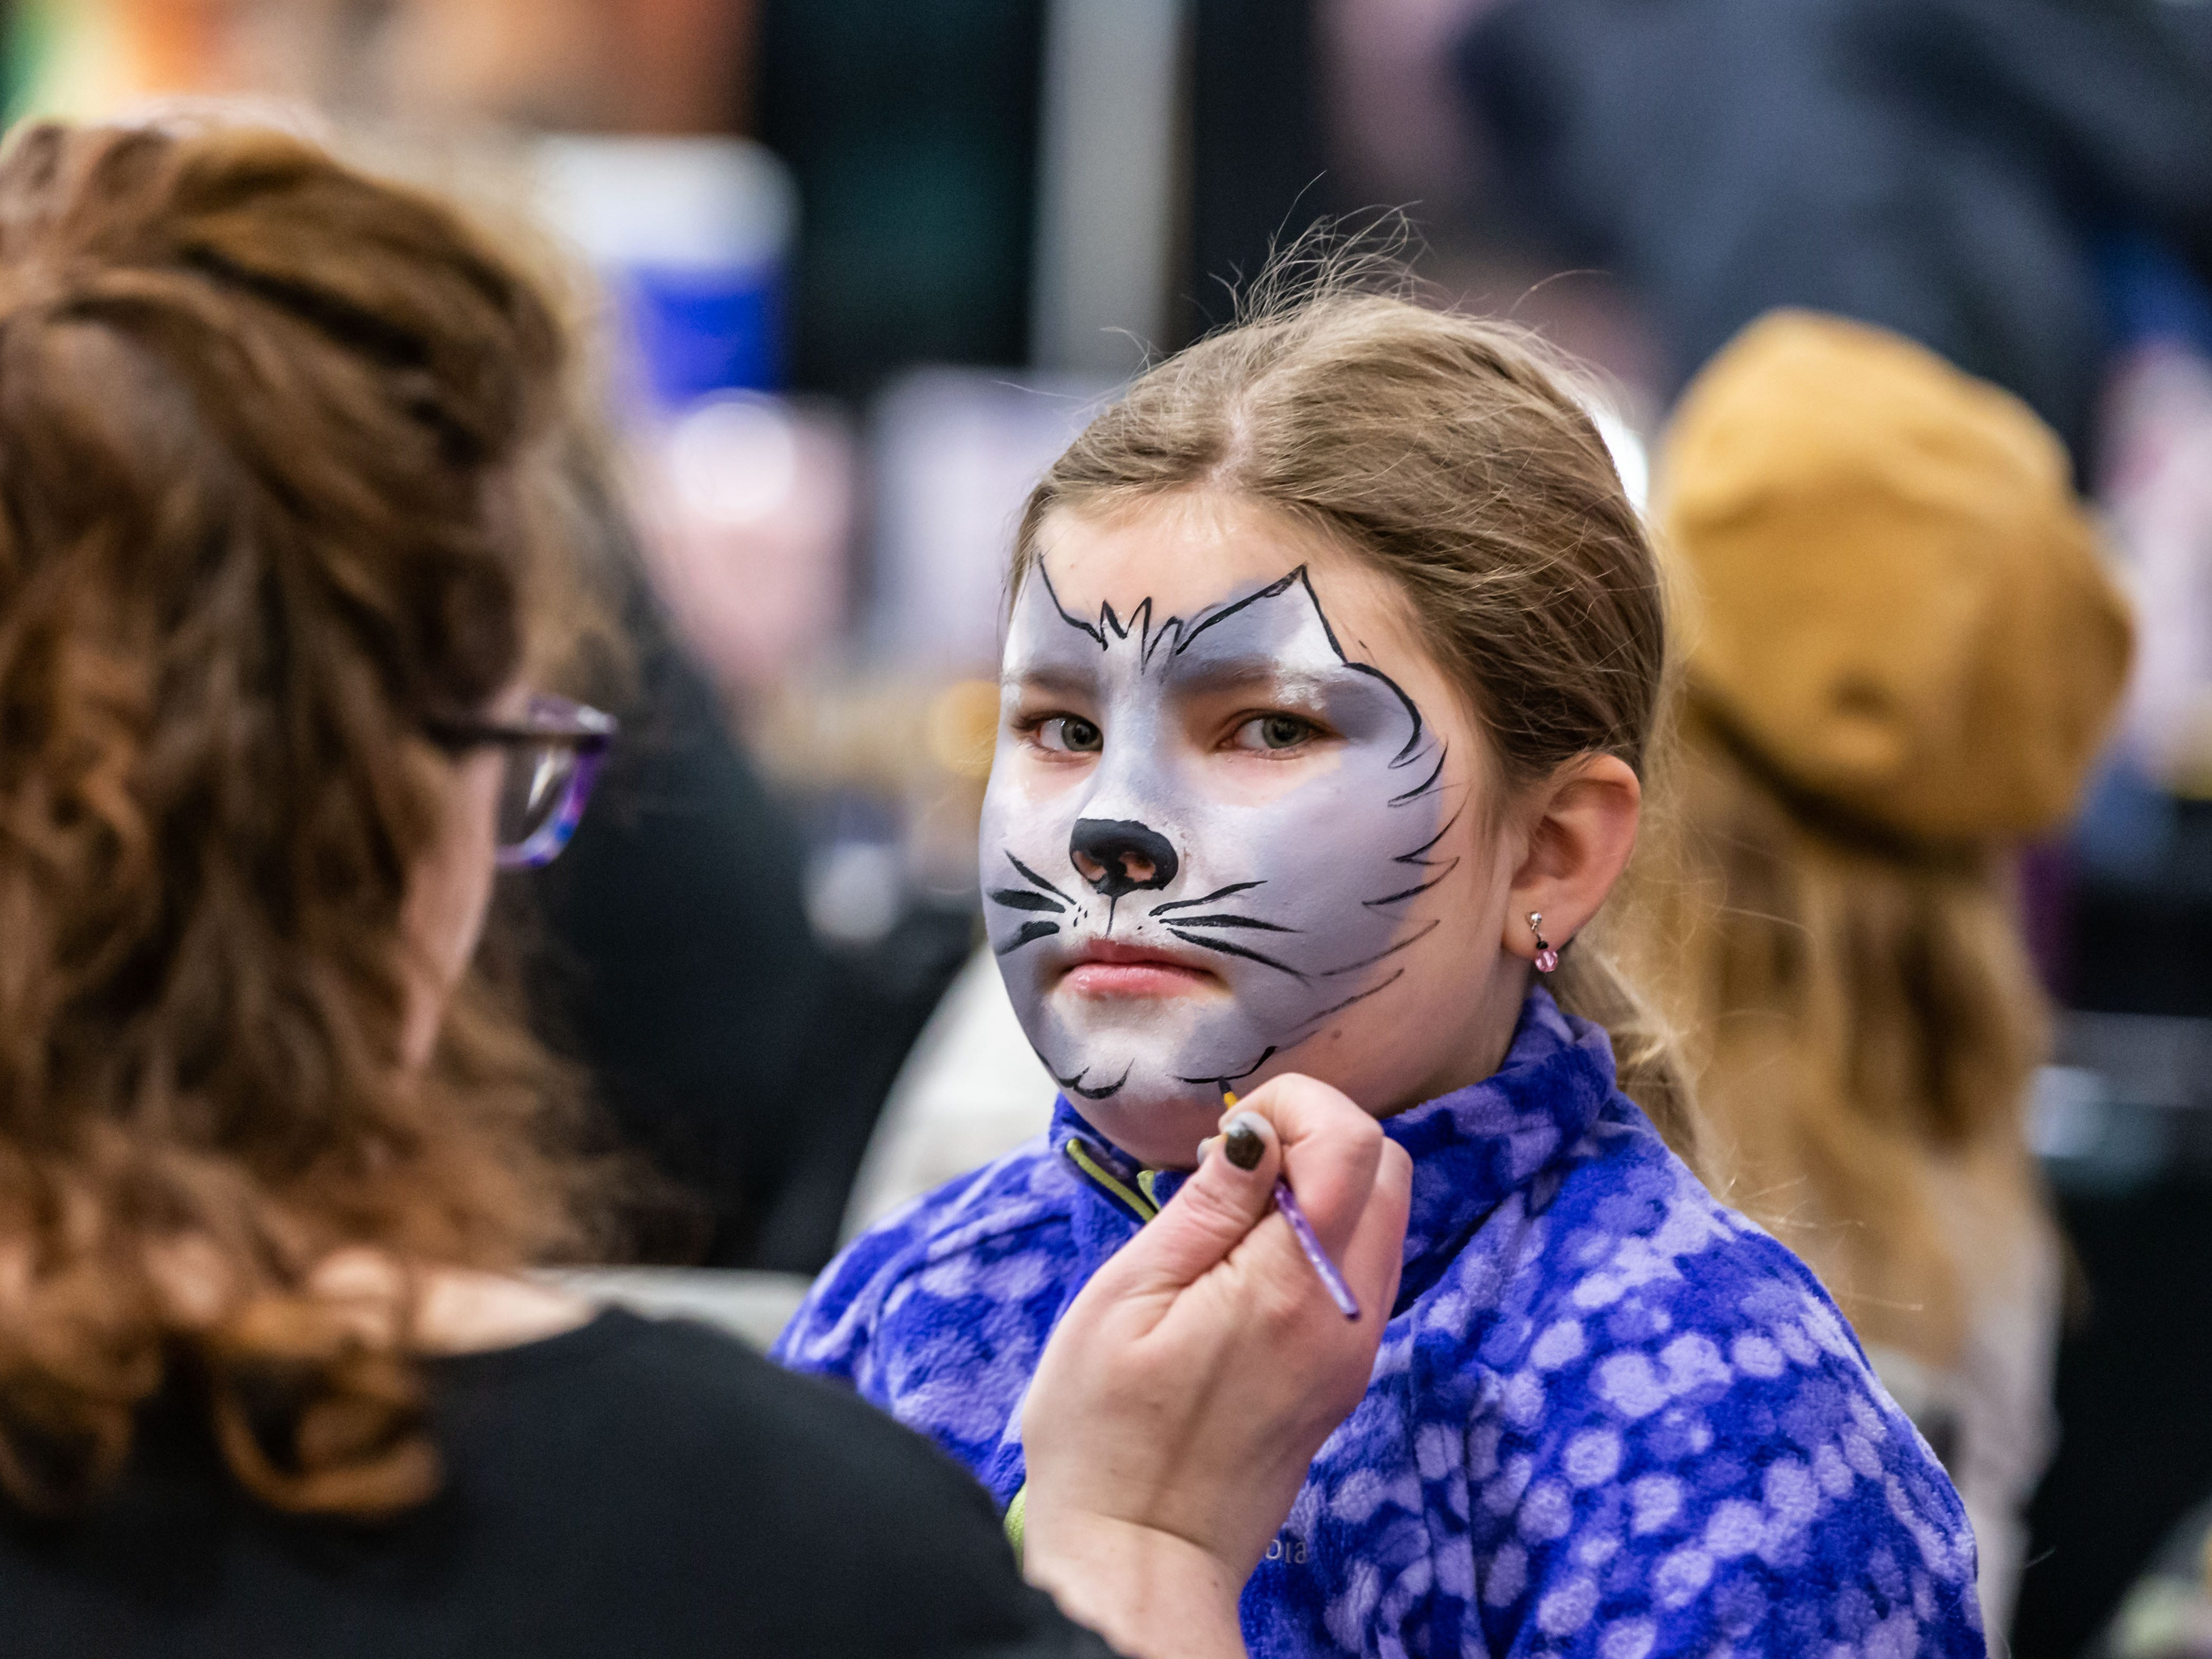 Emma Bruening, 9, of West Bend sits for a face painting by Painted Faces during the Milwaukee Kids Expo at State Fair Park in West Allis on Sunday, Feb. 10, 2019. The two-day expo featured bounce houses, a petting zoo, a rock climbing wall, pony rides, caricature paintings, a maze challenge and much more.